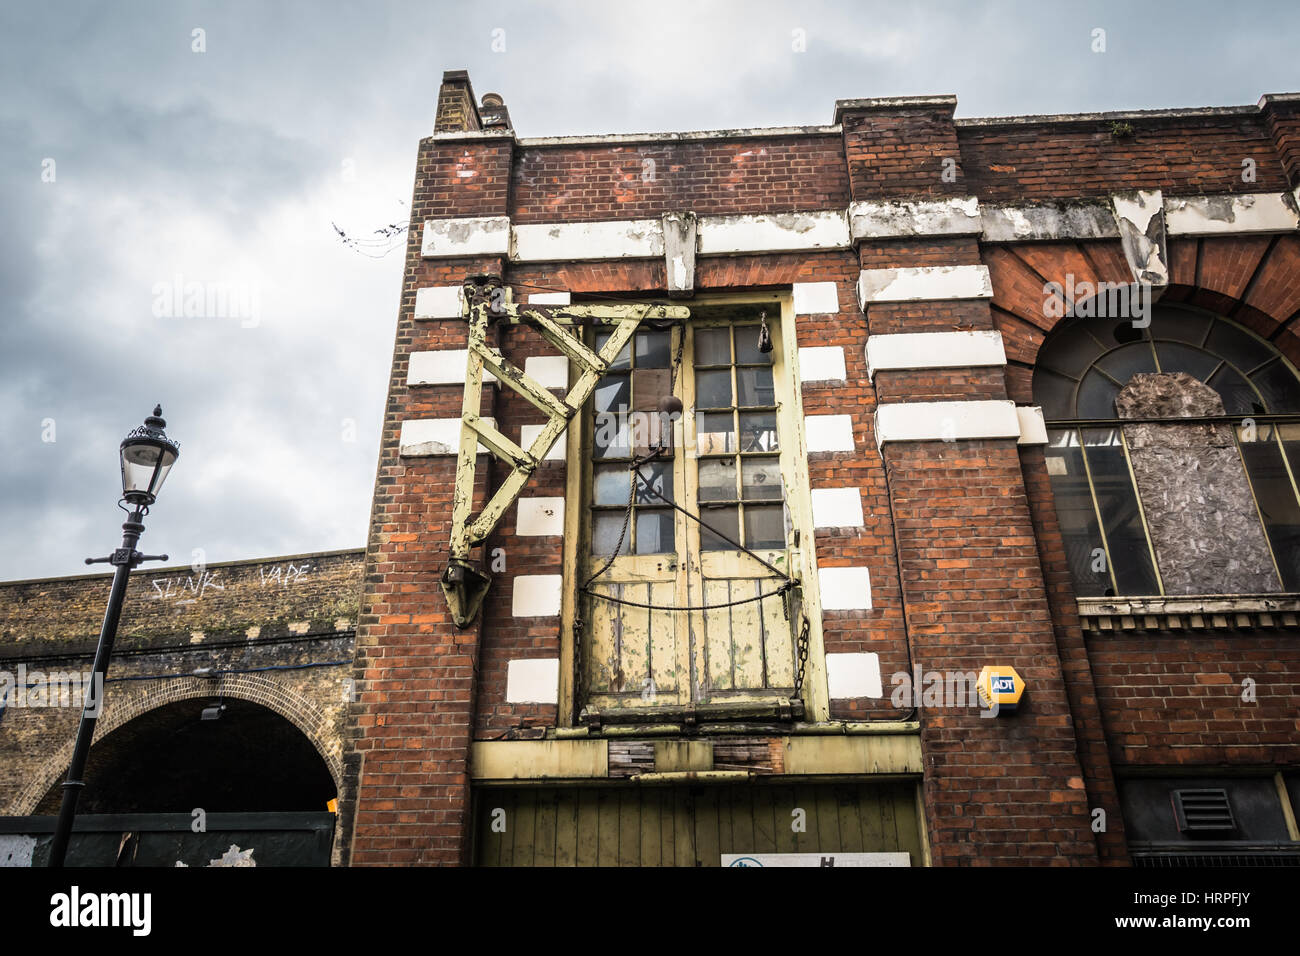 An old industrial pulley and hoist on Red Cross Way, Southwark, London, SE1, UK - Stock Image